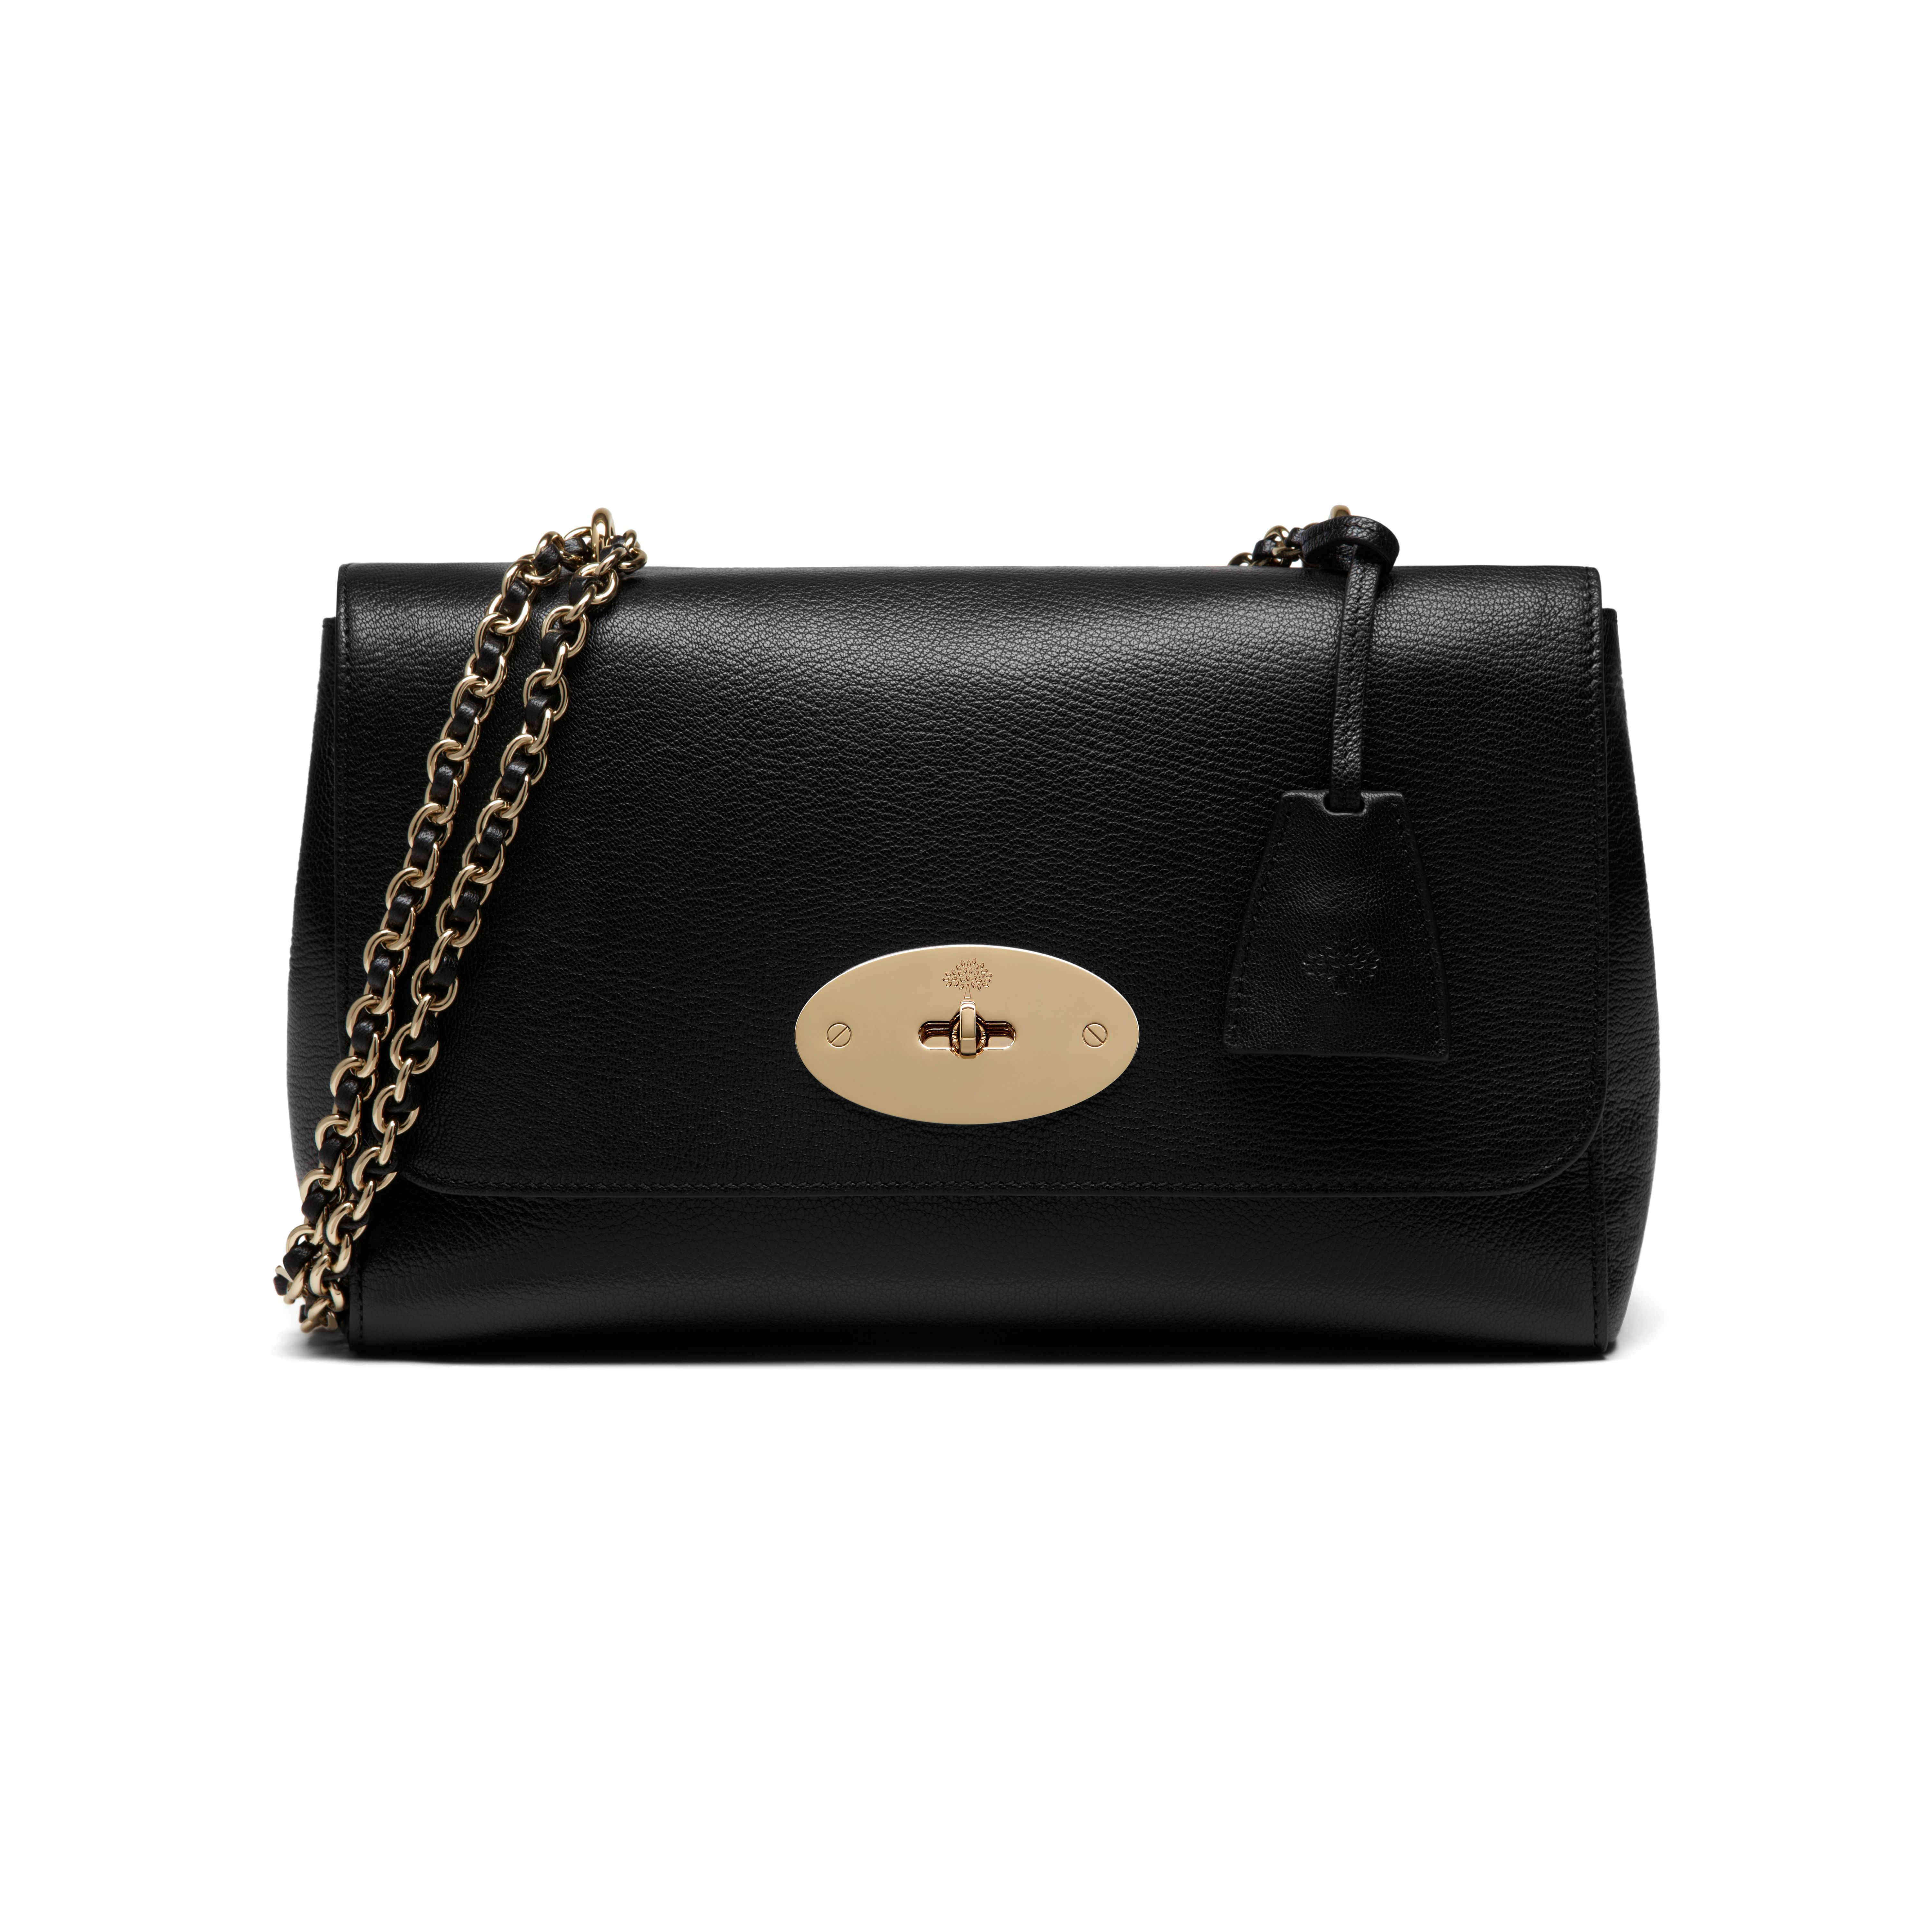 a5f8a0996c84 Classic & timeless Mulberry - Medium Lily in Black Glossy Goat With Soft  Gold